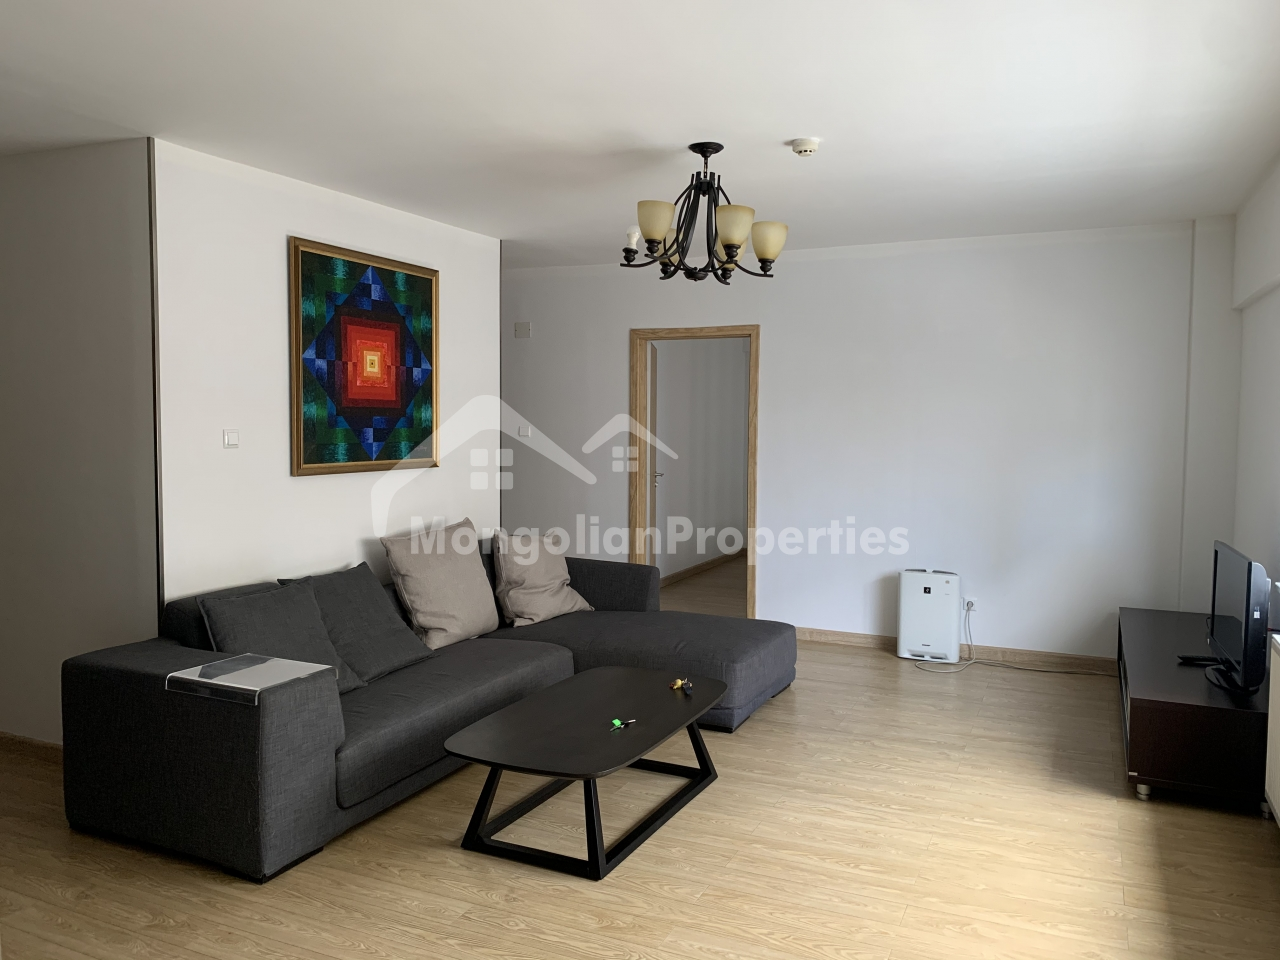 FOR RENT: FULLY FURNISHED 1 BEDROOM APARTMENT AT ONE RESIDENCE